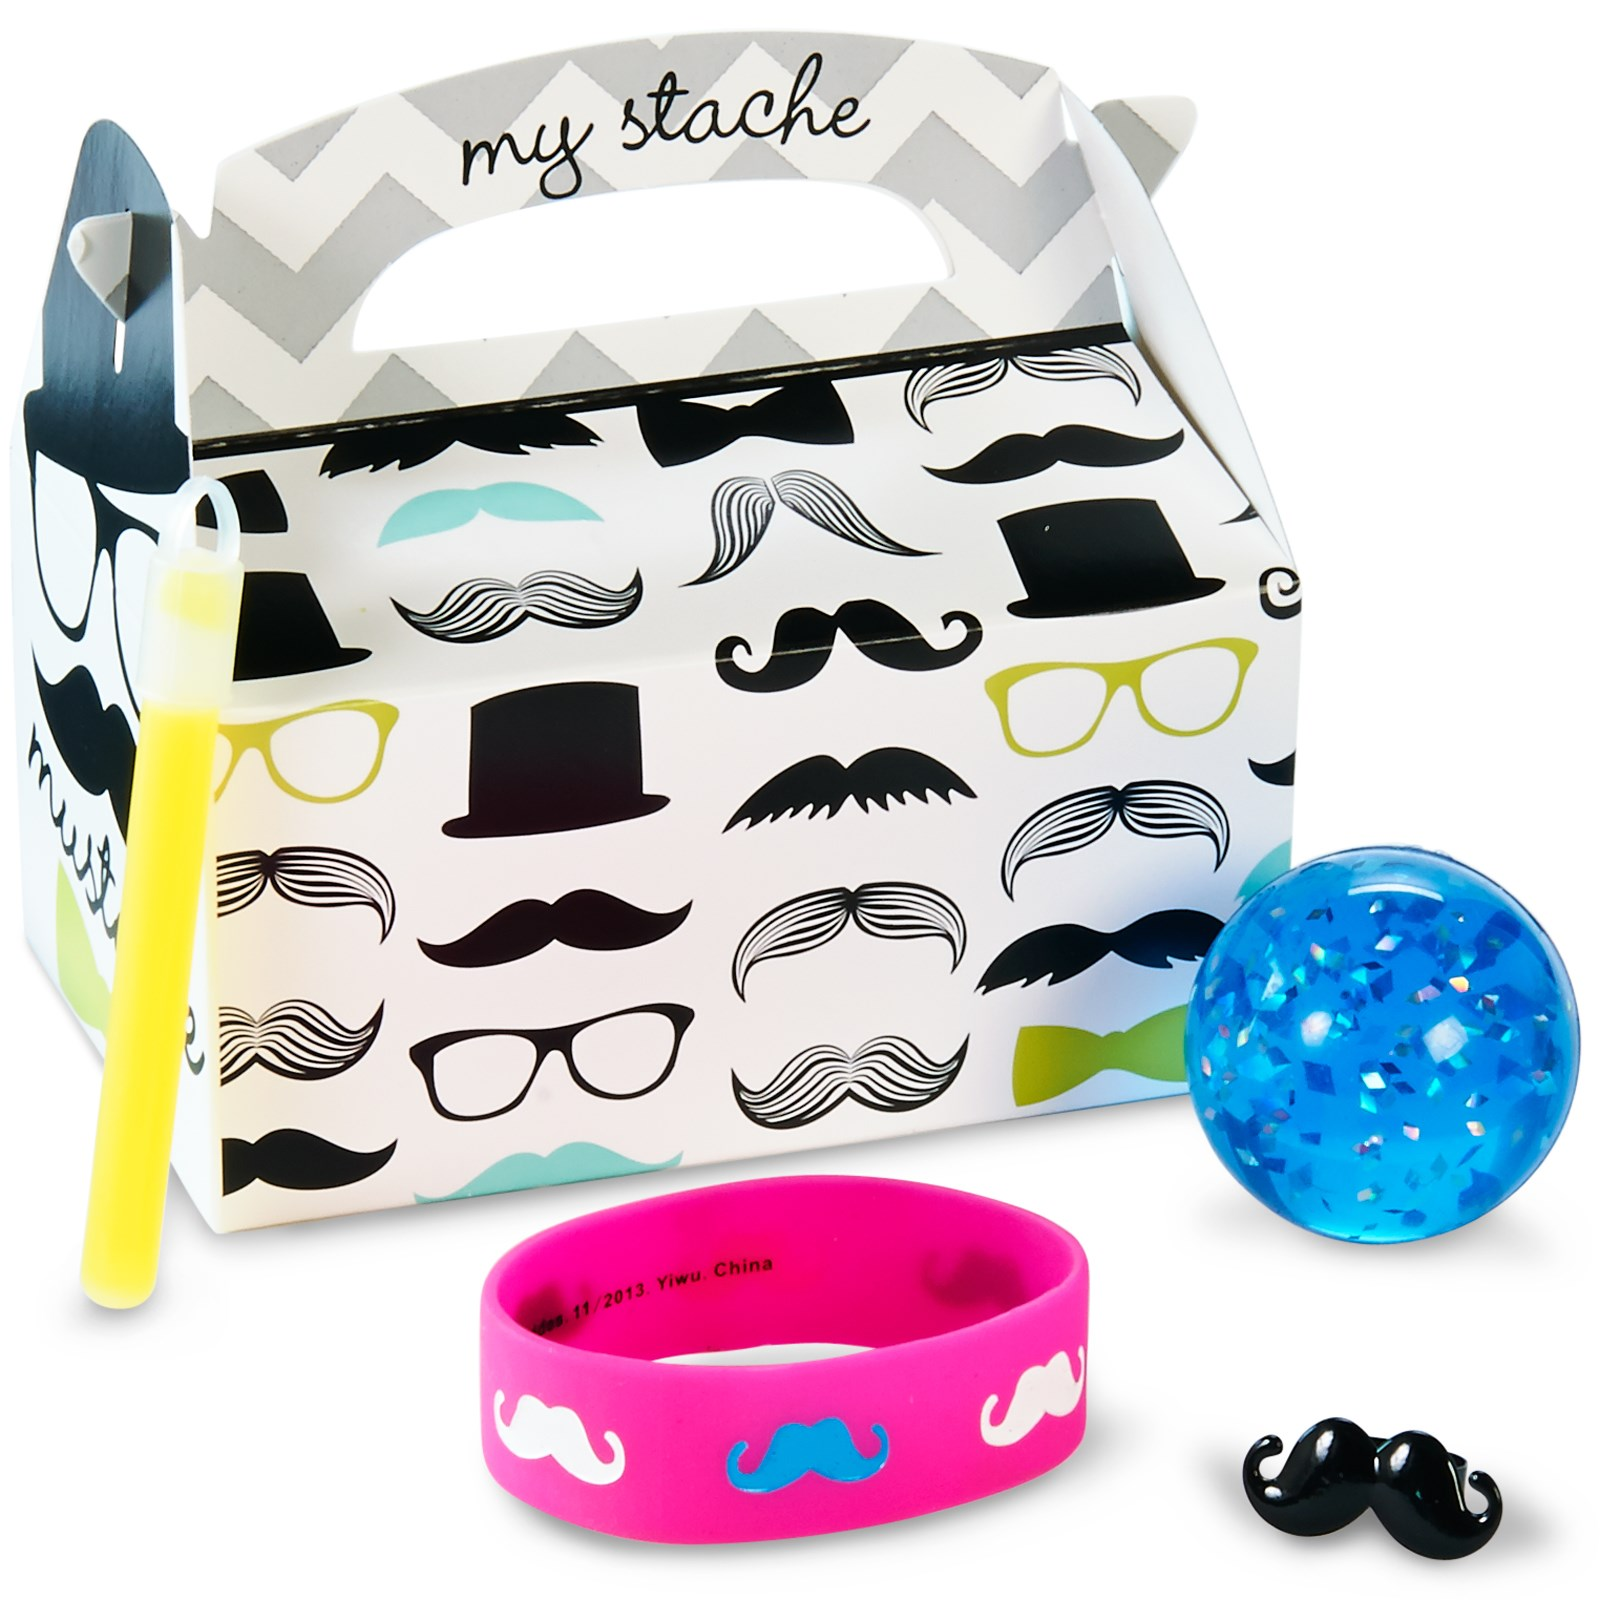 Mustache Man Filled Party Favor Box